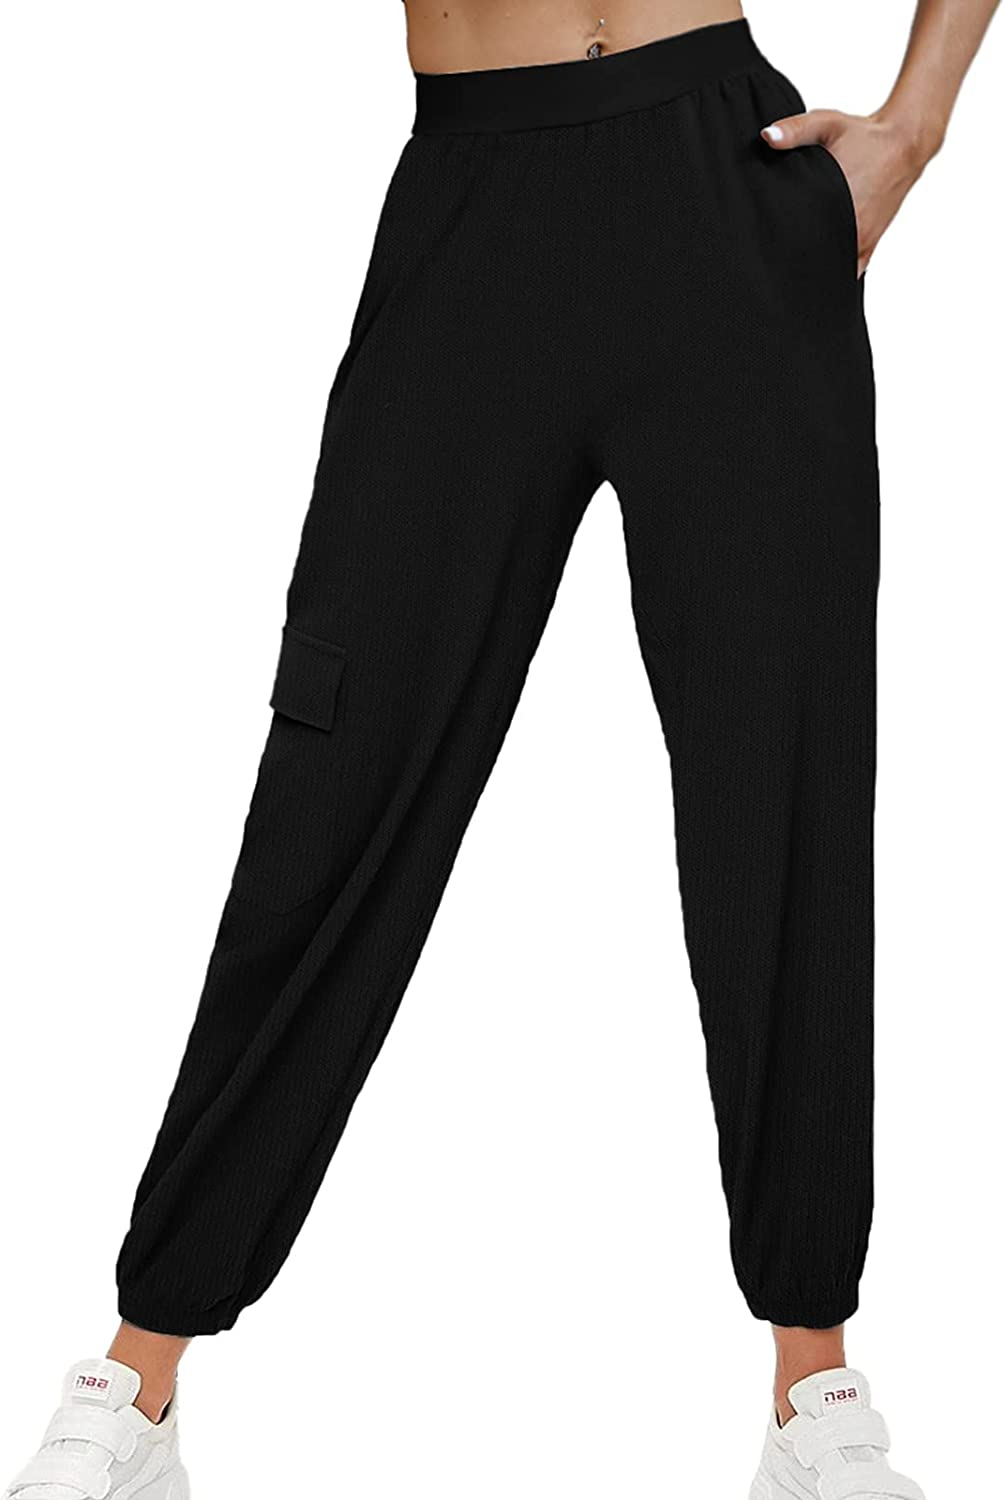 OFEEFAN Women's Lightweight Joggers Pants Workout R Pockets with New products, world's highest quality popular! Popular product